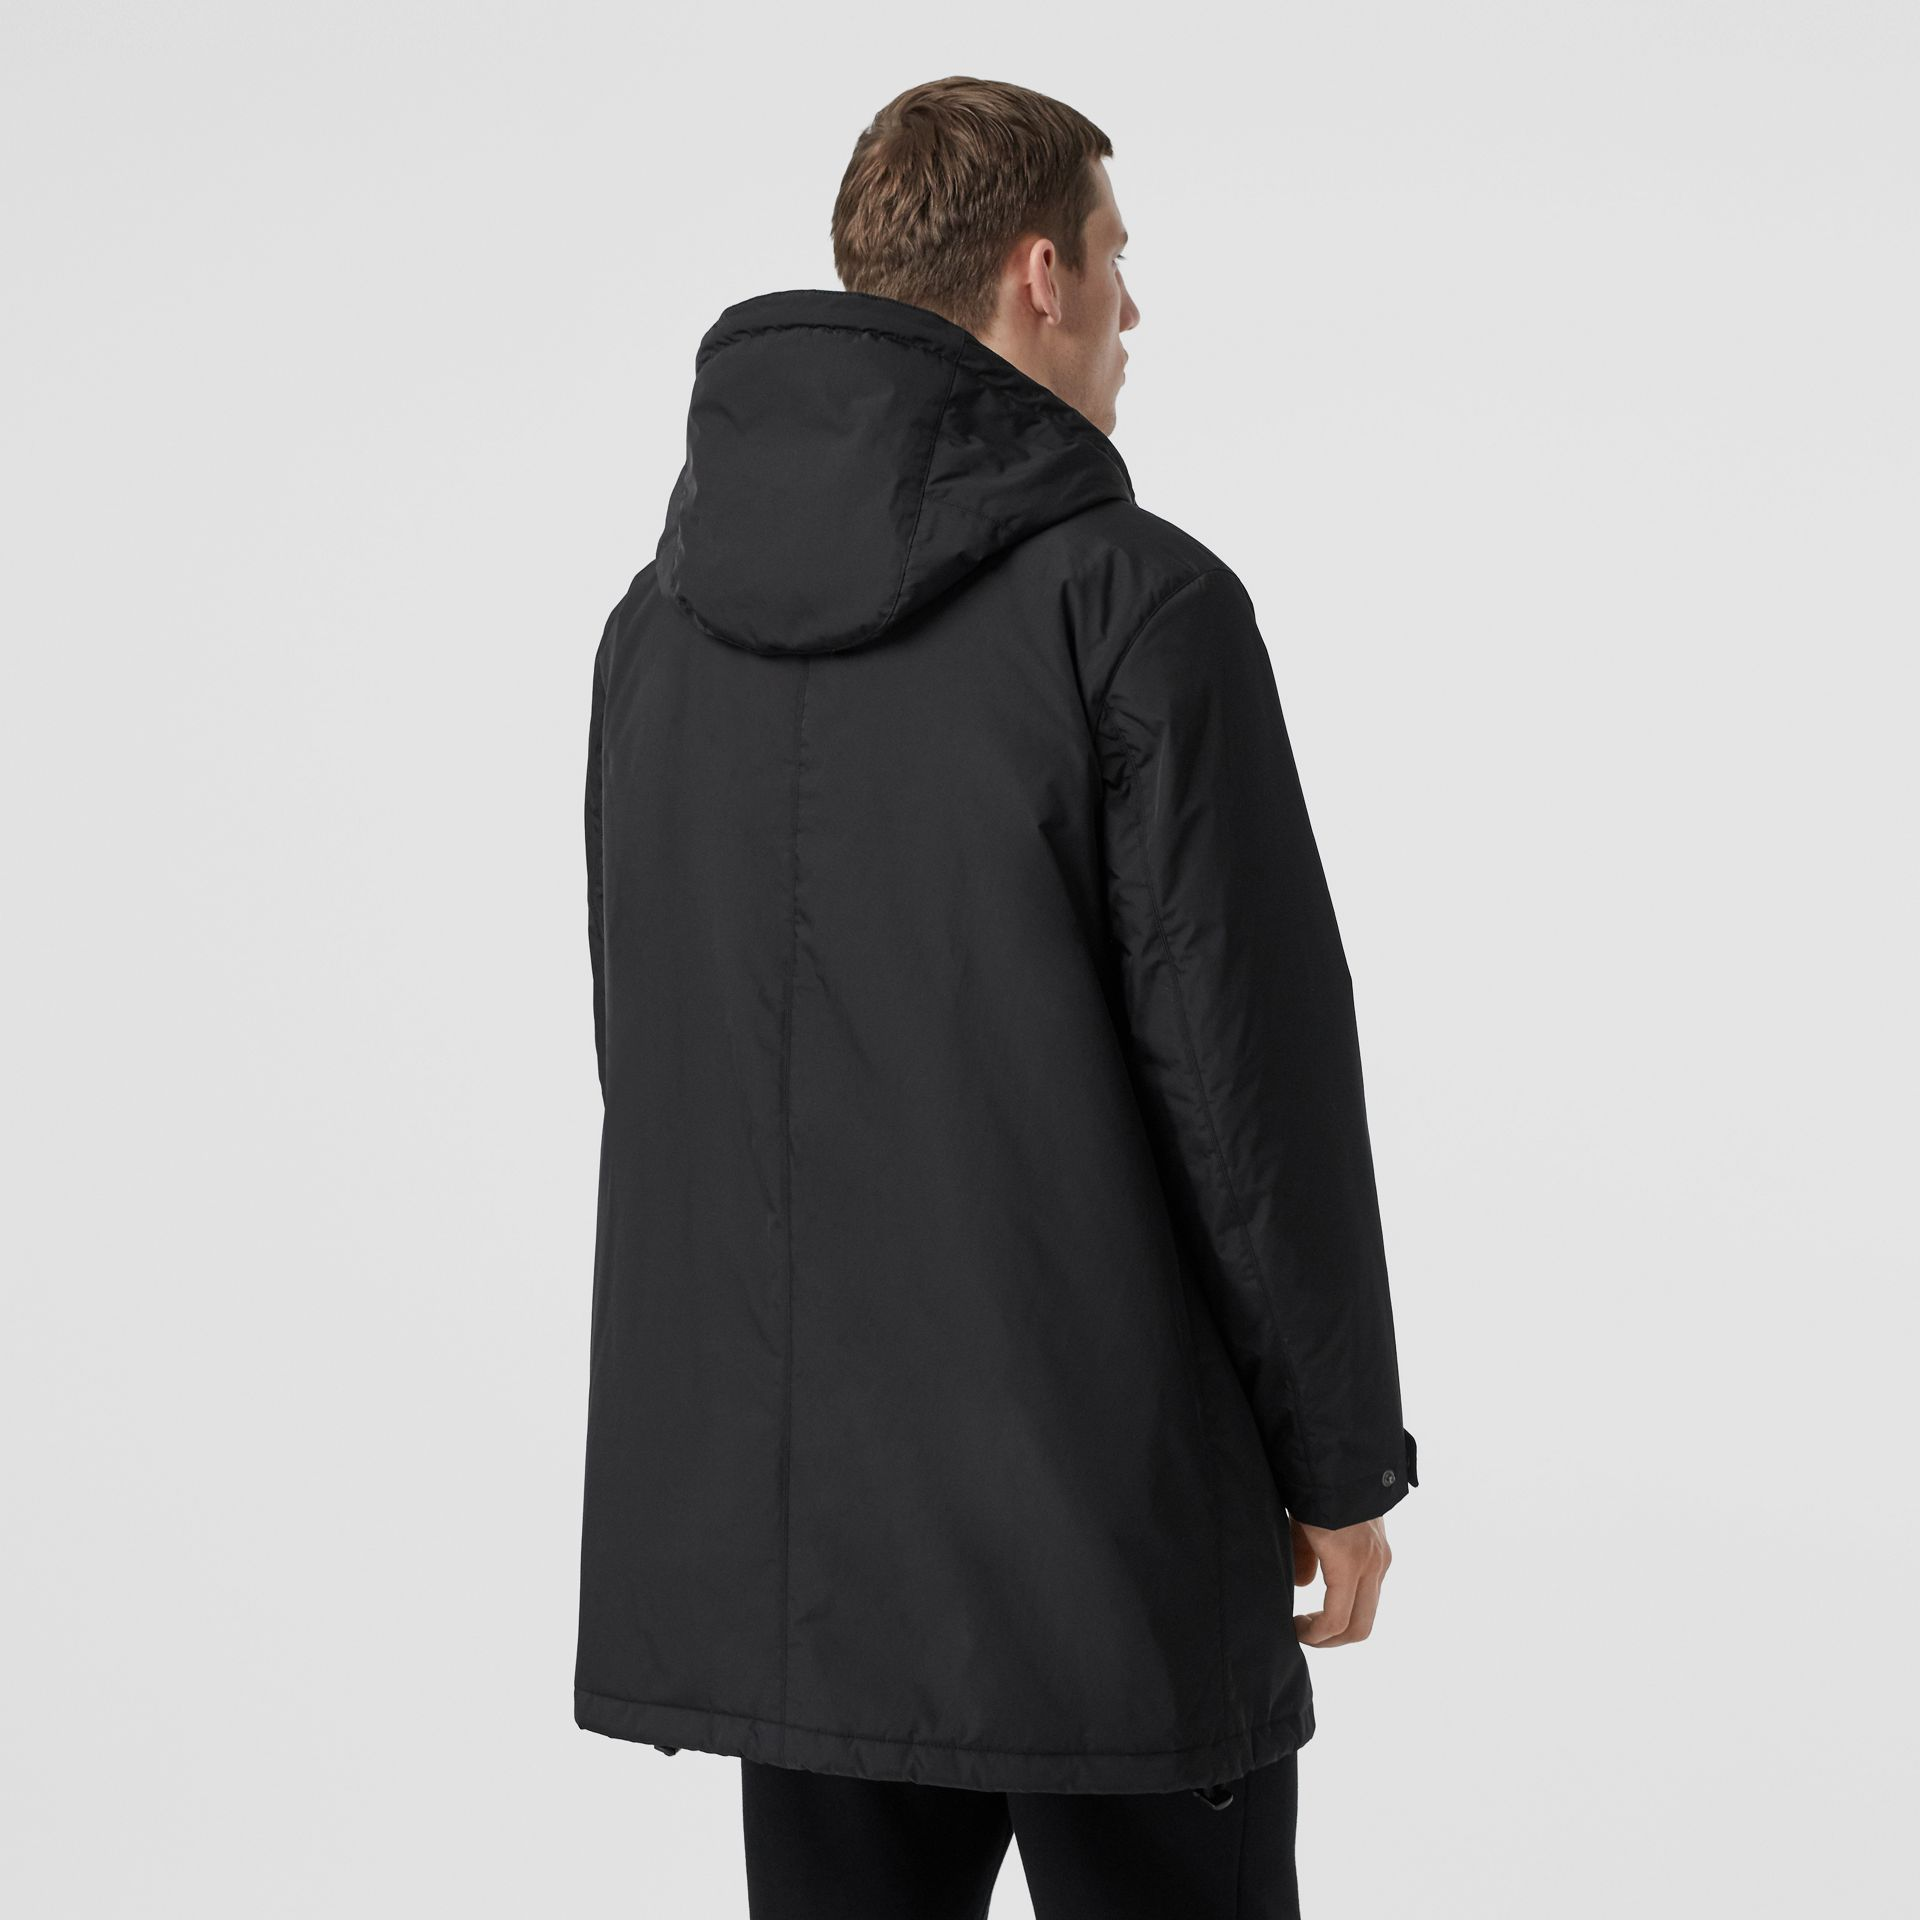 Monogram Motif Nylon Twill Hooded Coat in Black - Men | Burberry United States - gallery image 2